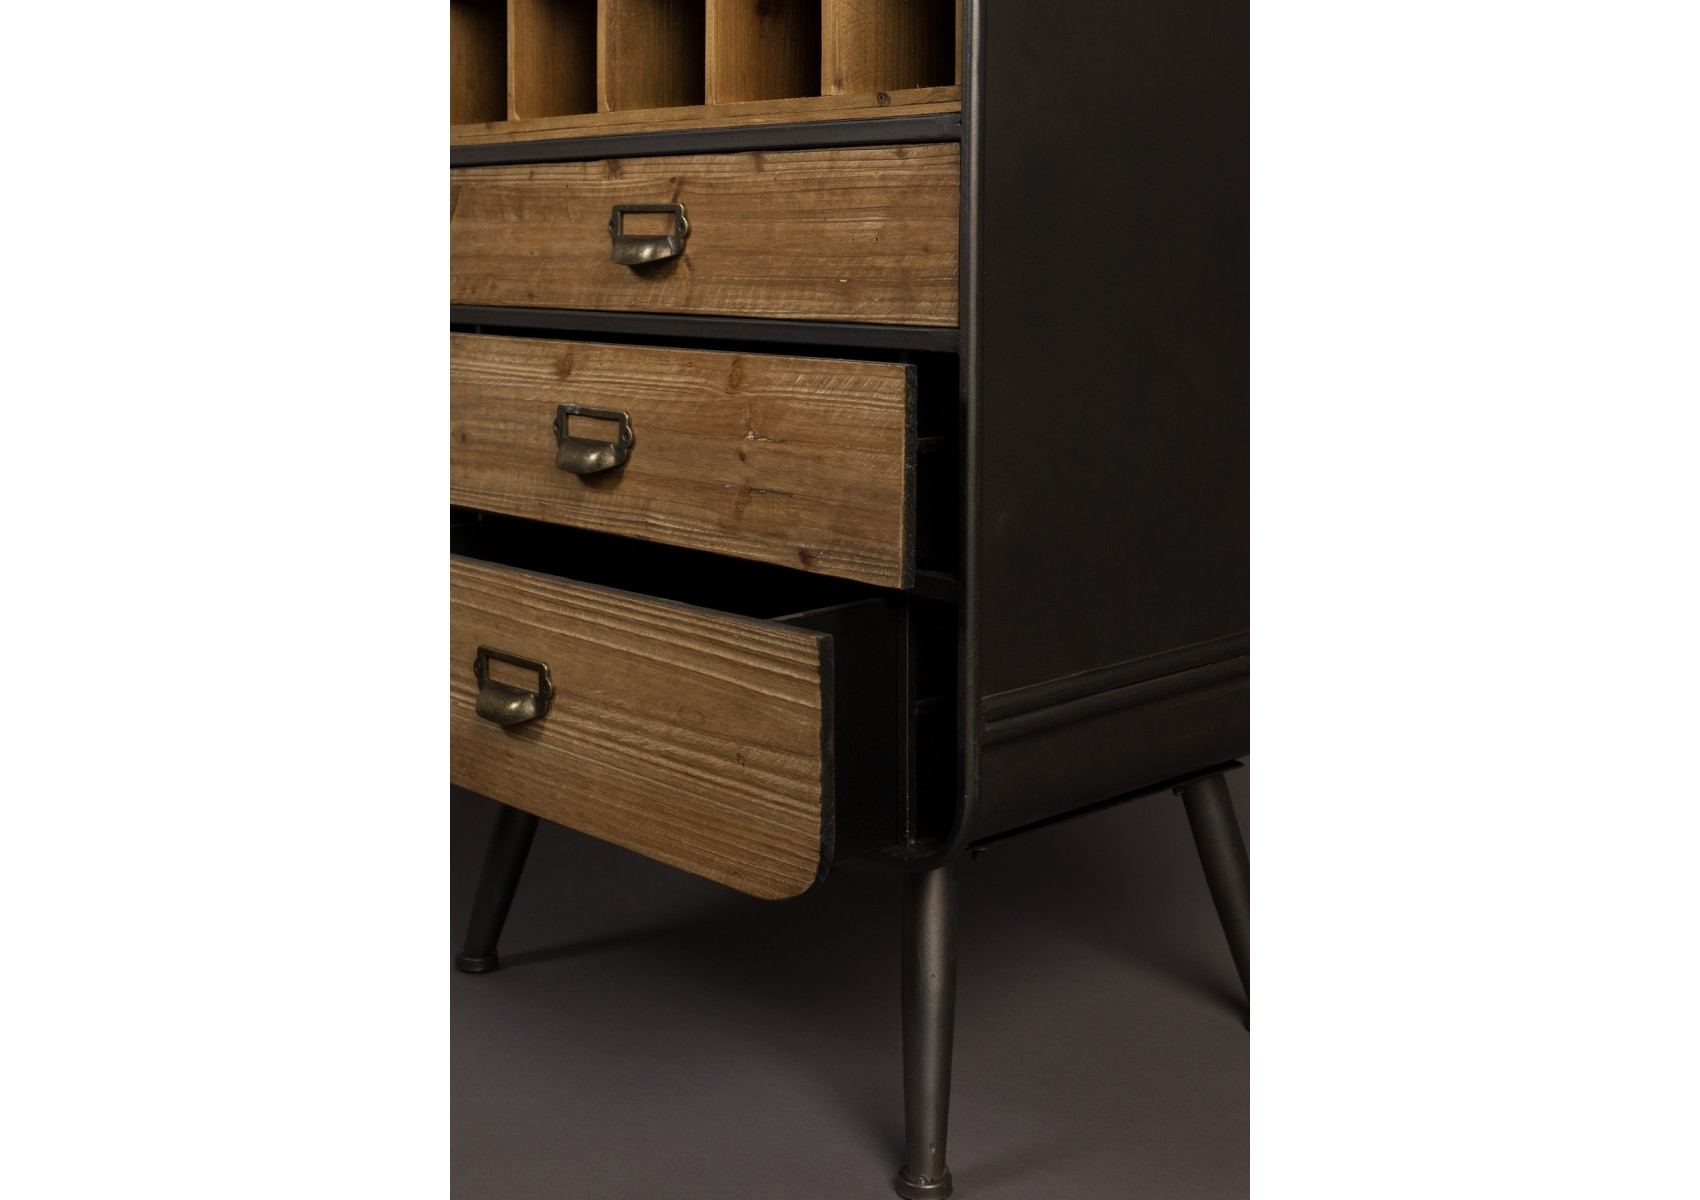 meuble casier bouteille gallery of casiers pour bouteilles casier vin cave vin rangement du vin. Black Bedroom Furniture Sets. Home Design Ideas